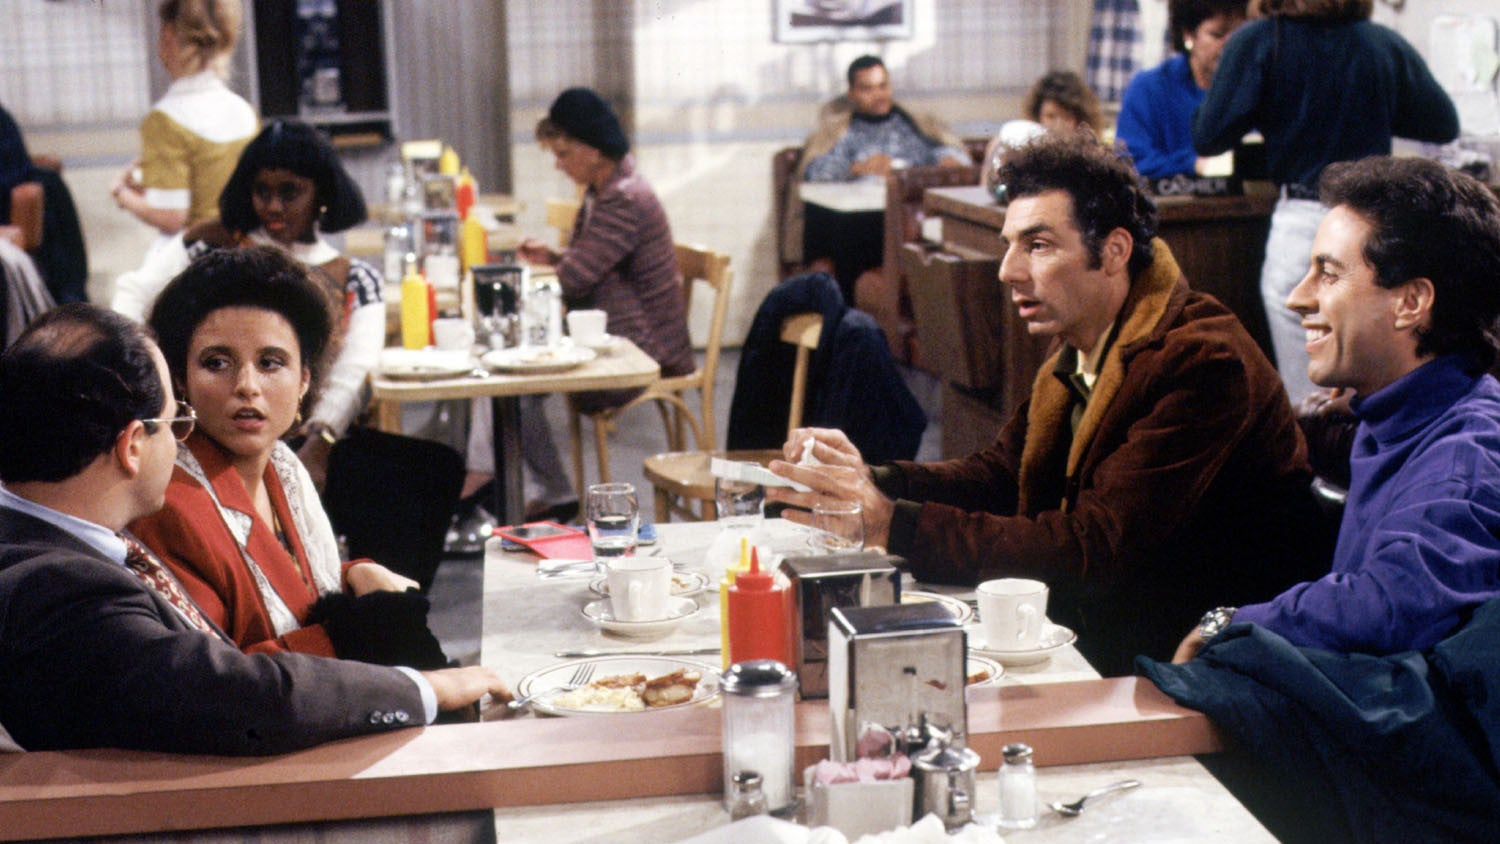 #SeinfeldTaughtMe: What We Learned From The Show About Nothing